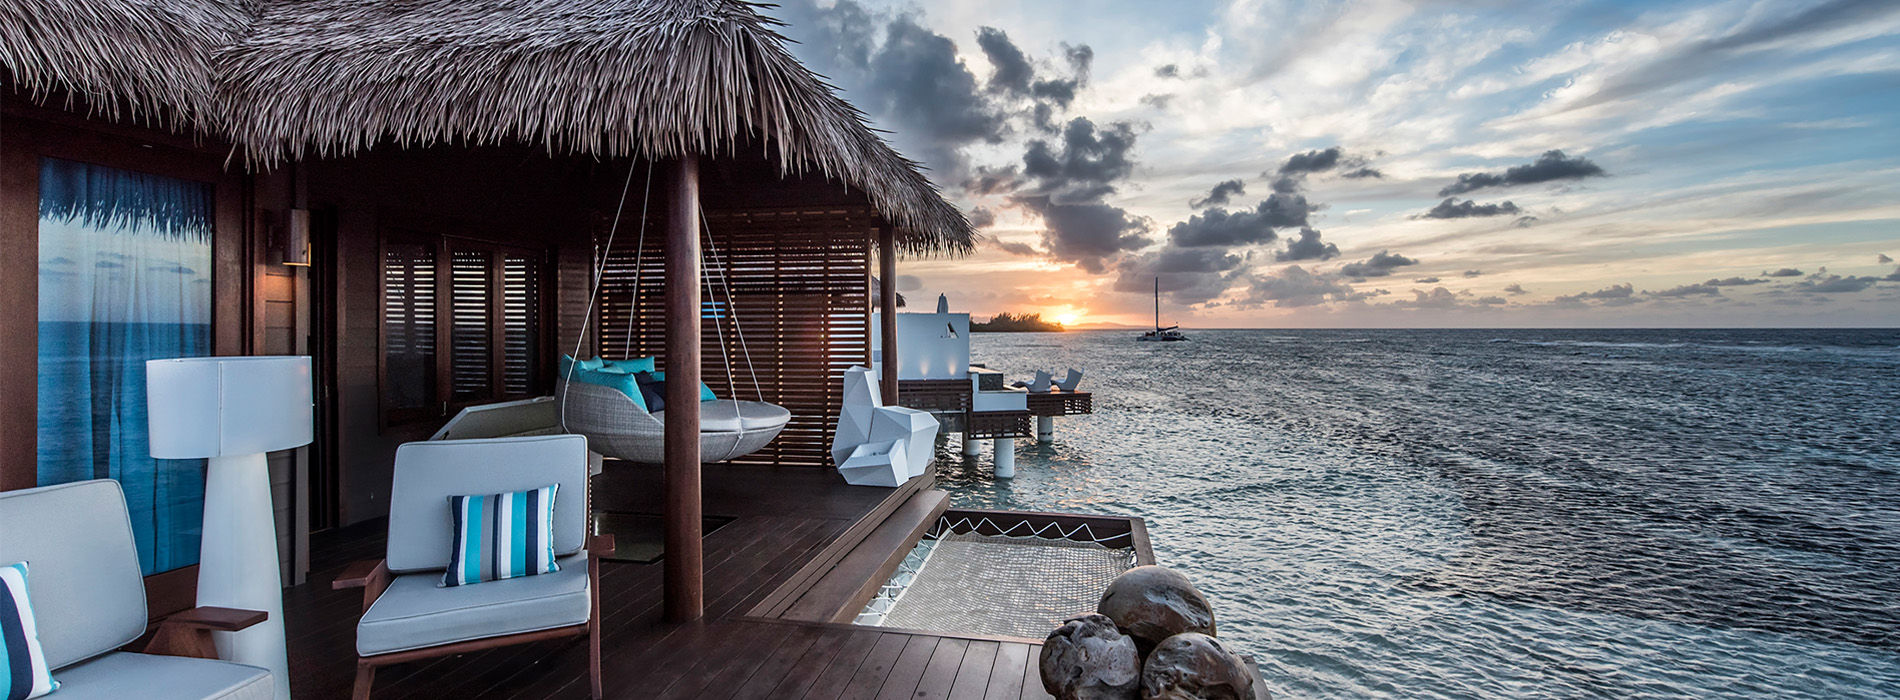 c38d15ec2e86 SANDALS RESORTS ANNOUNCES FUTURE PLANS FOR OVER-THE-WATER SUITES AS IT  DEBUTS THE FIRST OF ITS KIND IN THE CARIBBEAN